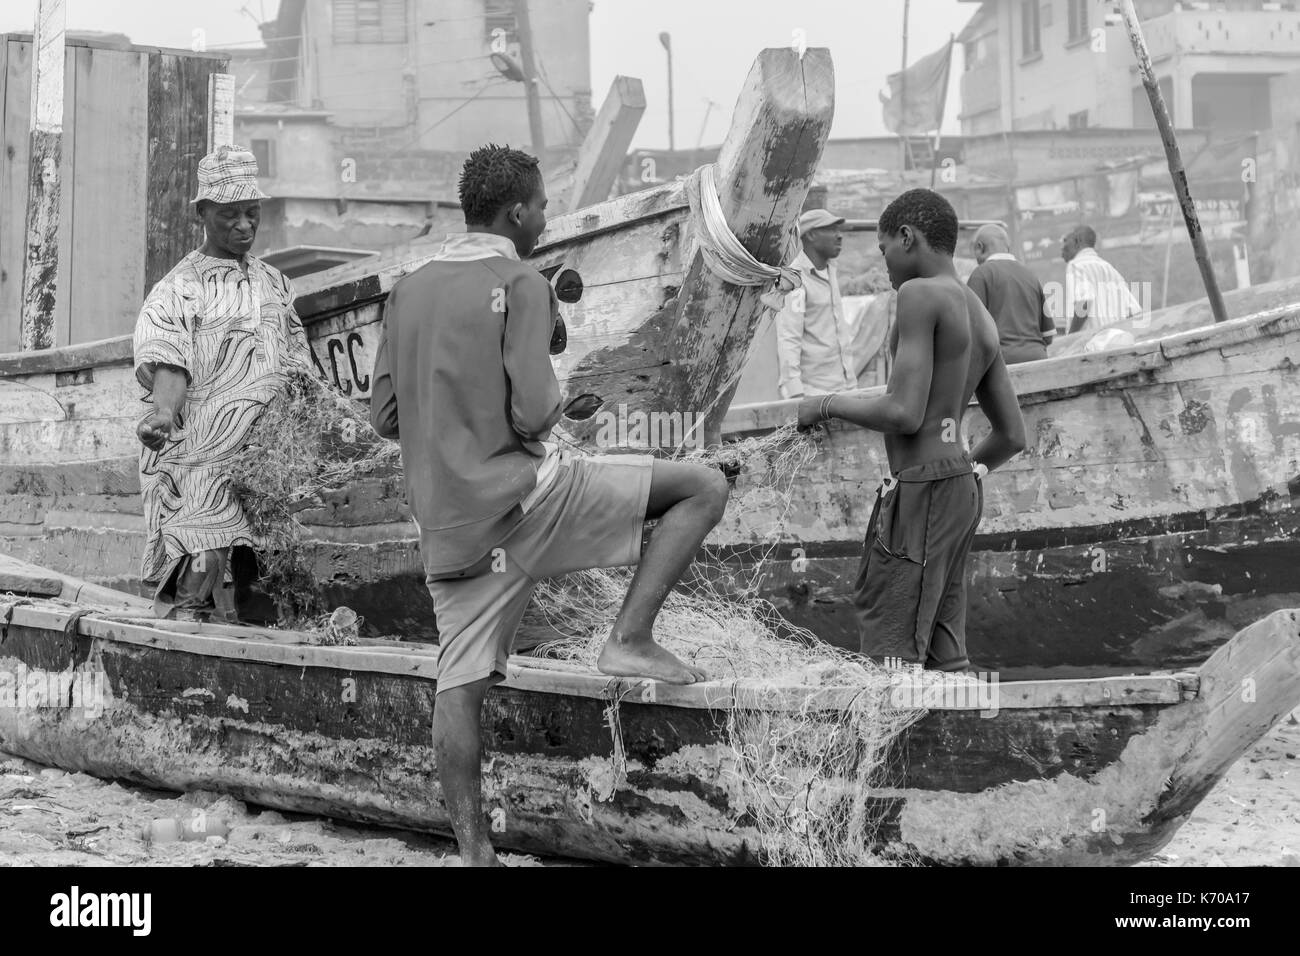 Ghana - December 28, 2016: Fishermen set up networks after fishing - Stock Image